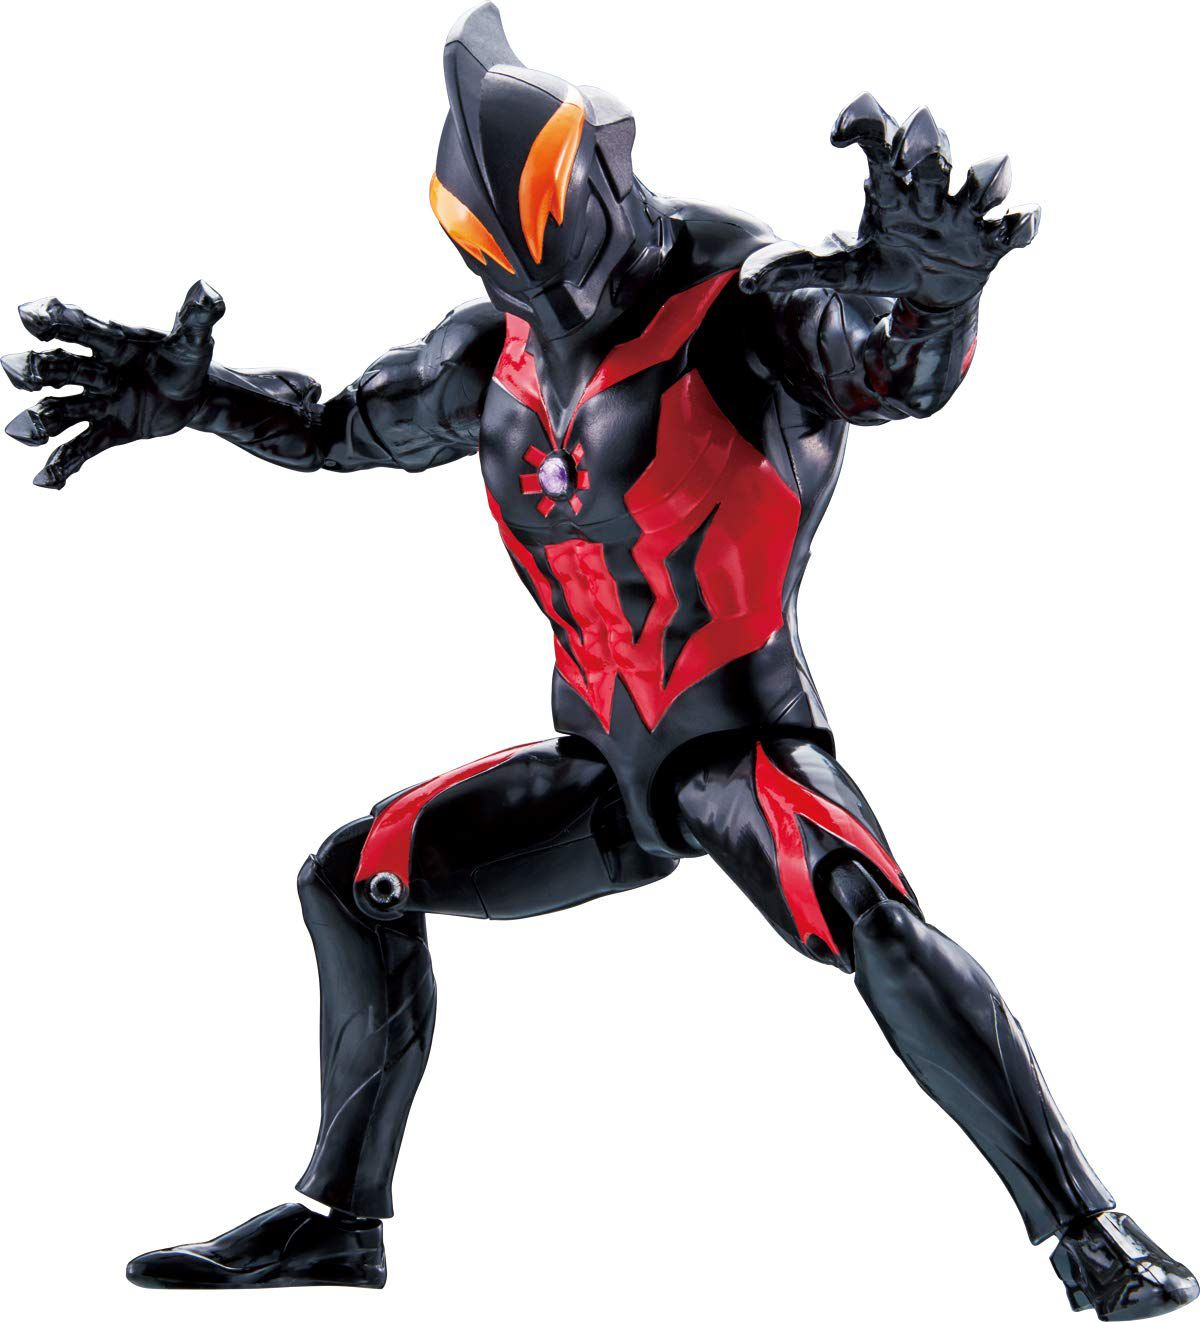 Ultraman - Belial Articulado - Action Figure - Original Bandai